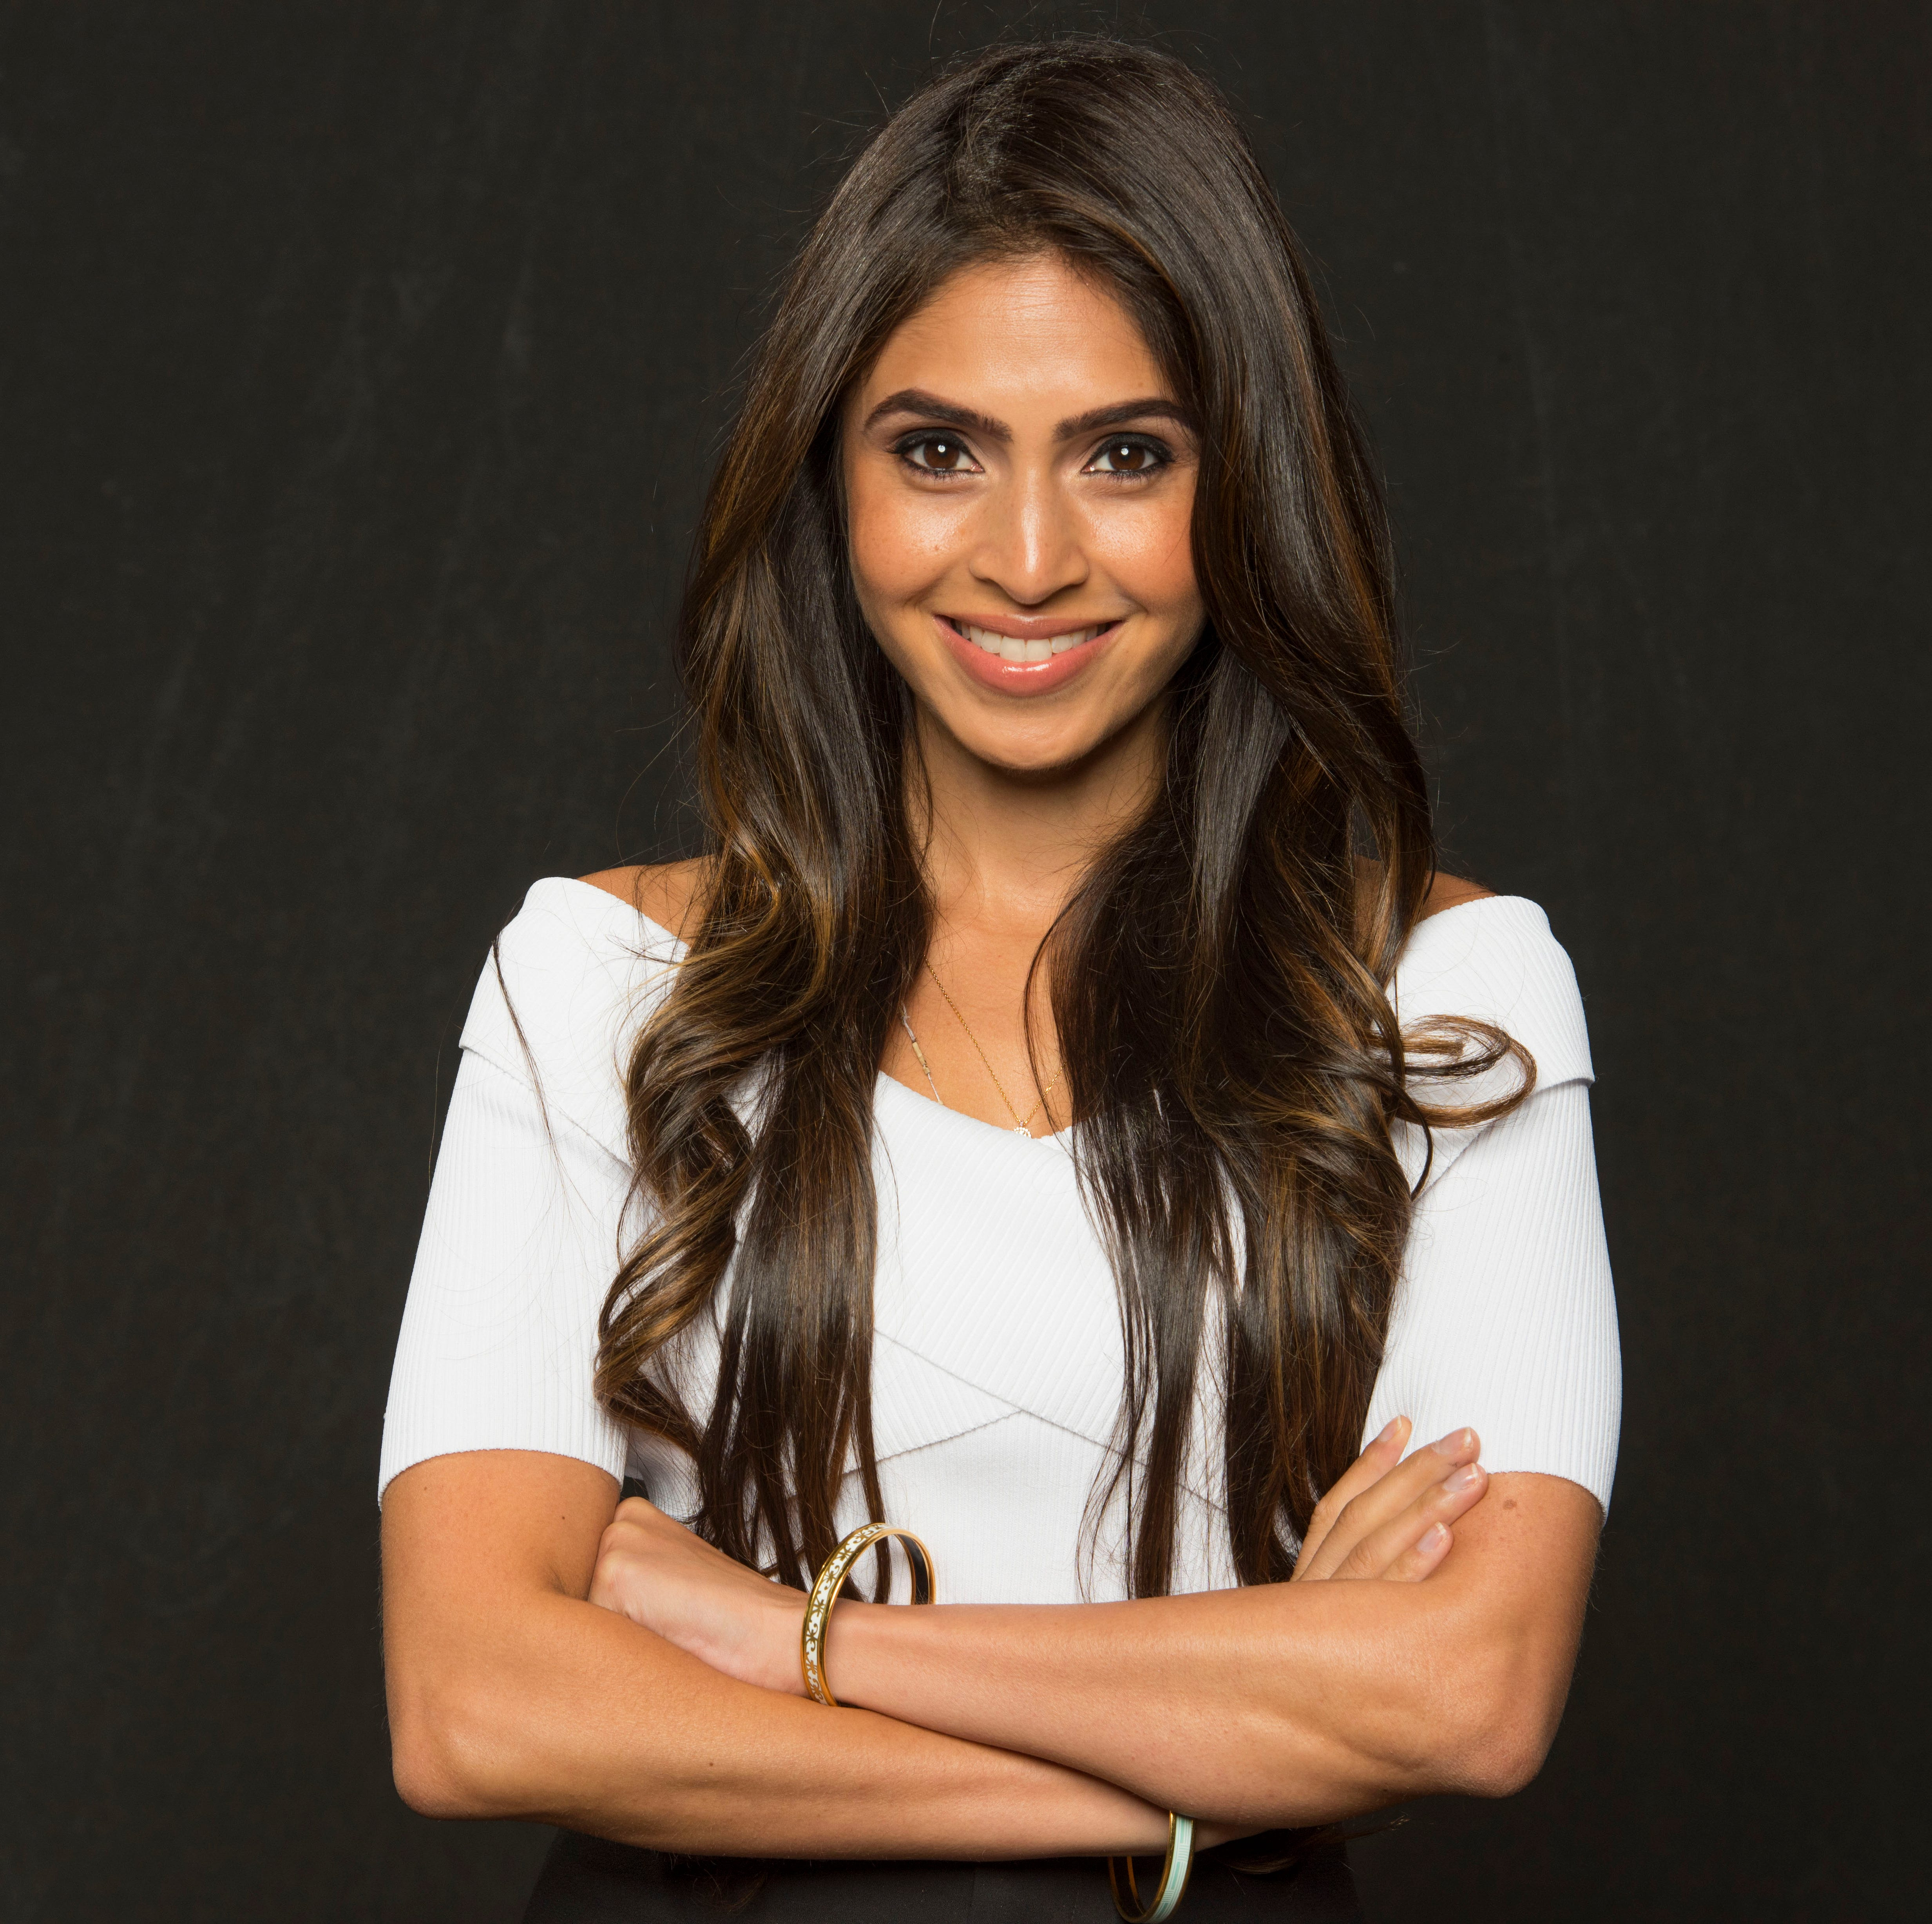 Payal Kadakia, CEO of ClassPass and director of SA Dance, gave herself a hard deadline of two weeks to come up with a business plan. Then, she followed her passion to create ClassPass.